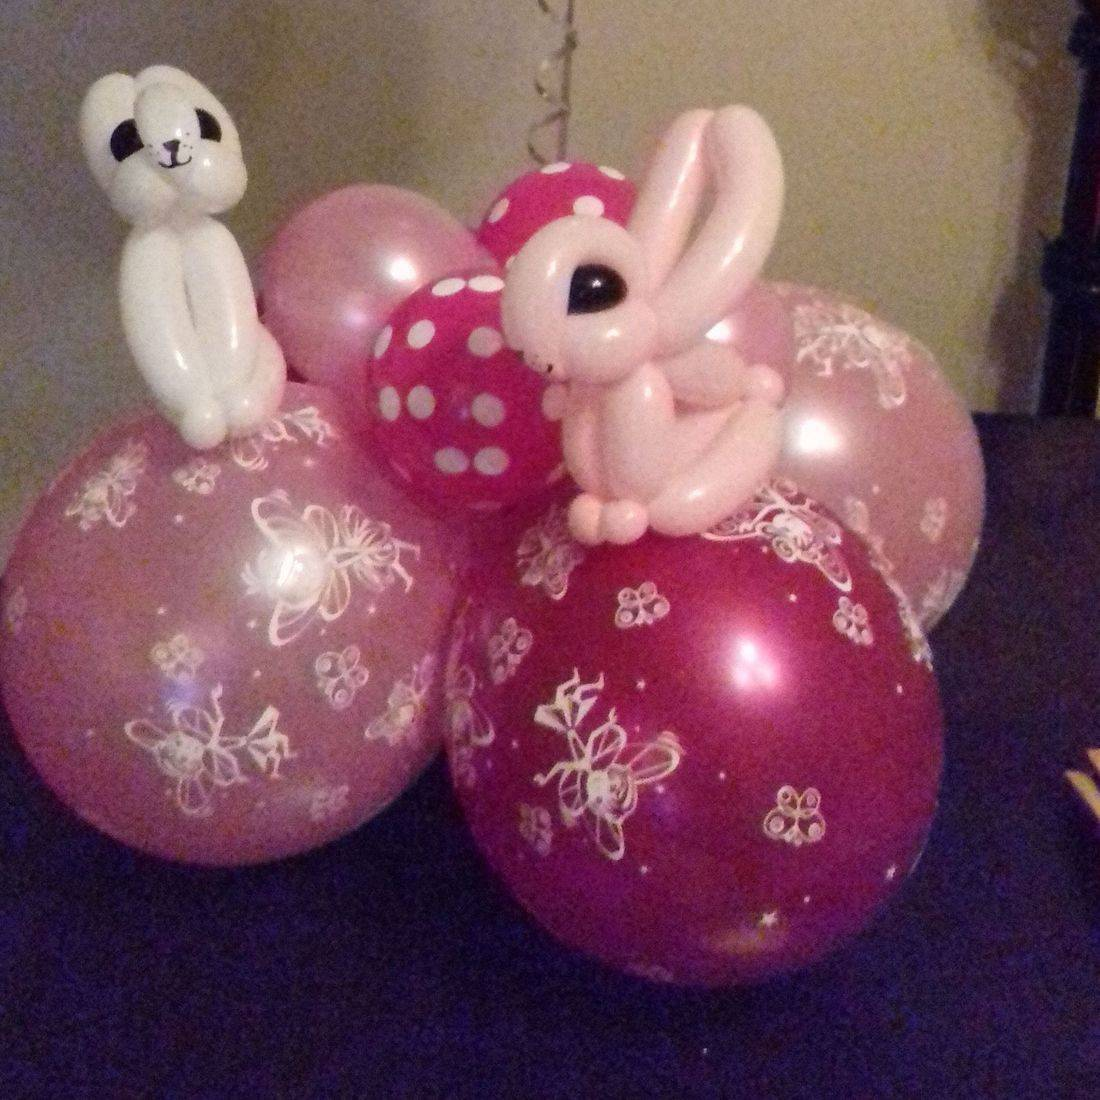 Bespoke balloon designs